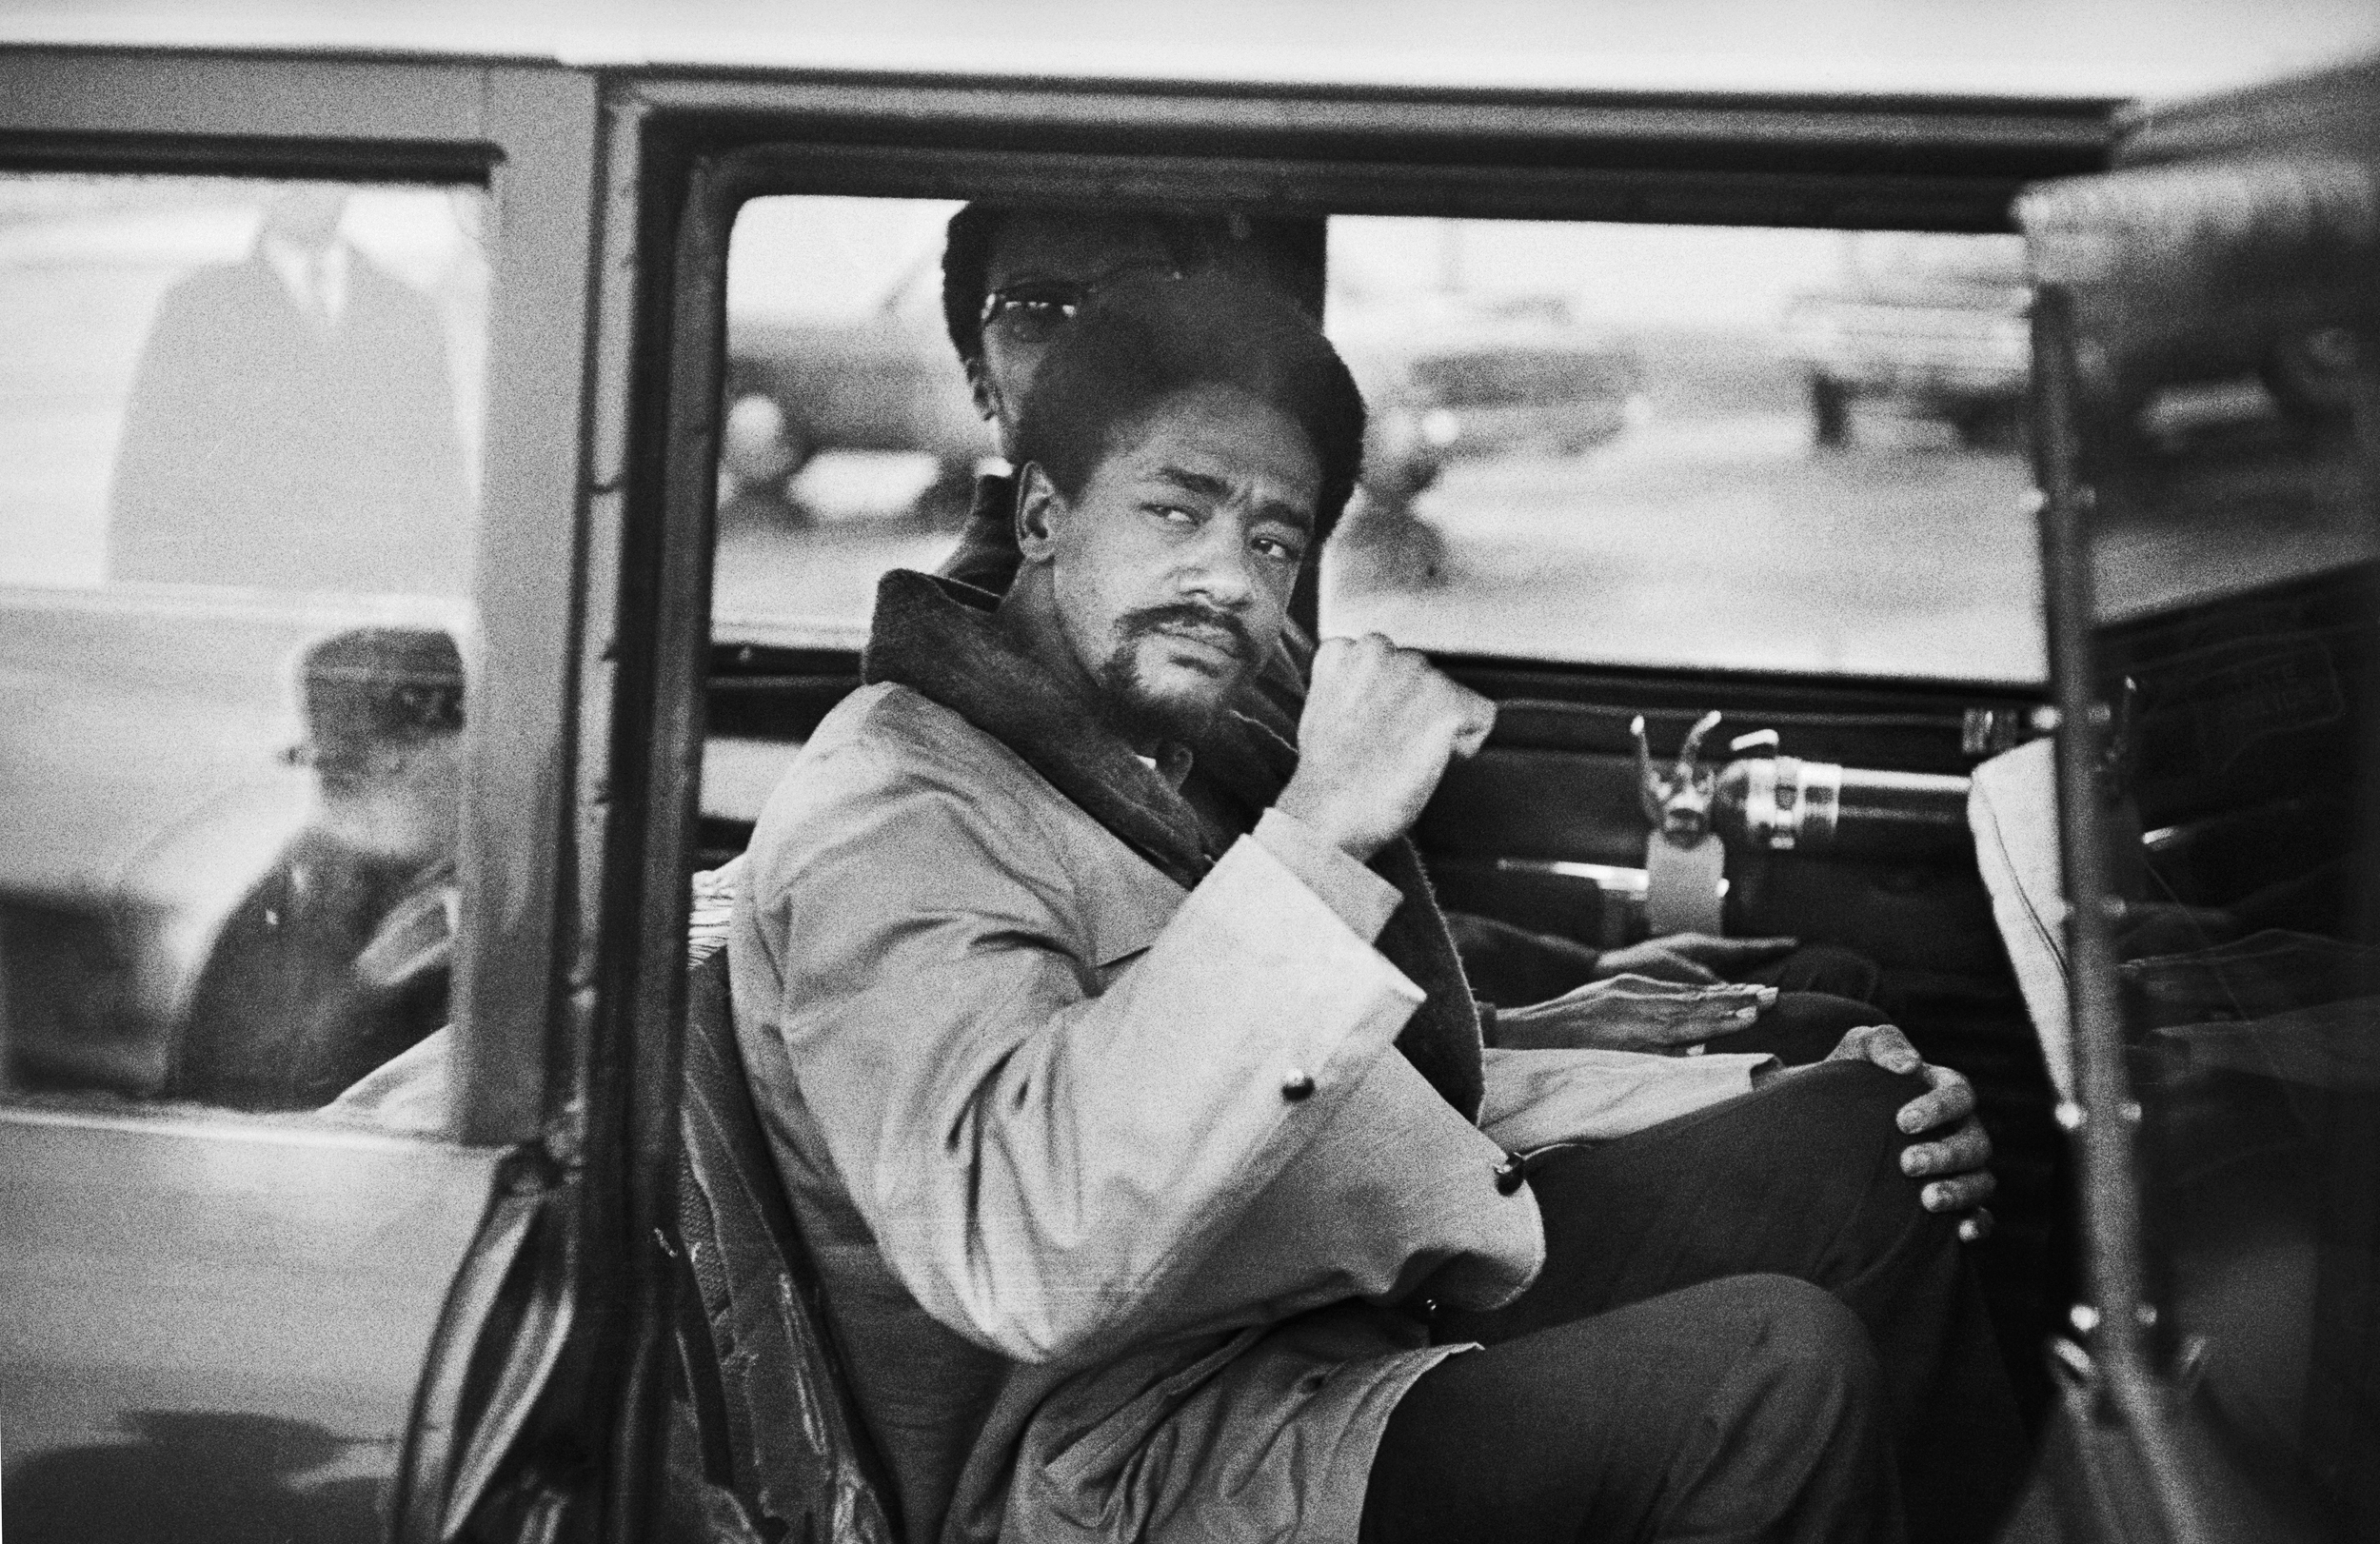 Black Panther leader Bobby Seale gives a black power salute as he leaves Hartford's Bradley Airport for the trip to New Haven. Seale faces trial in connection with the murder of Alex Rackley.